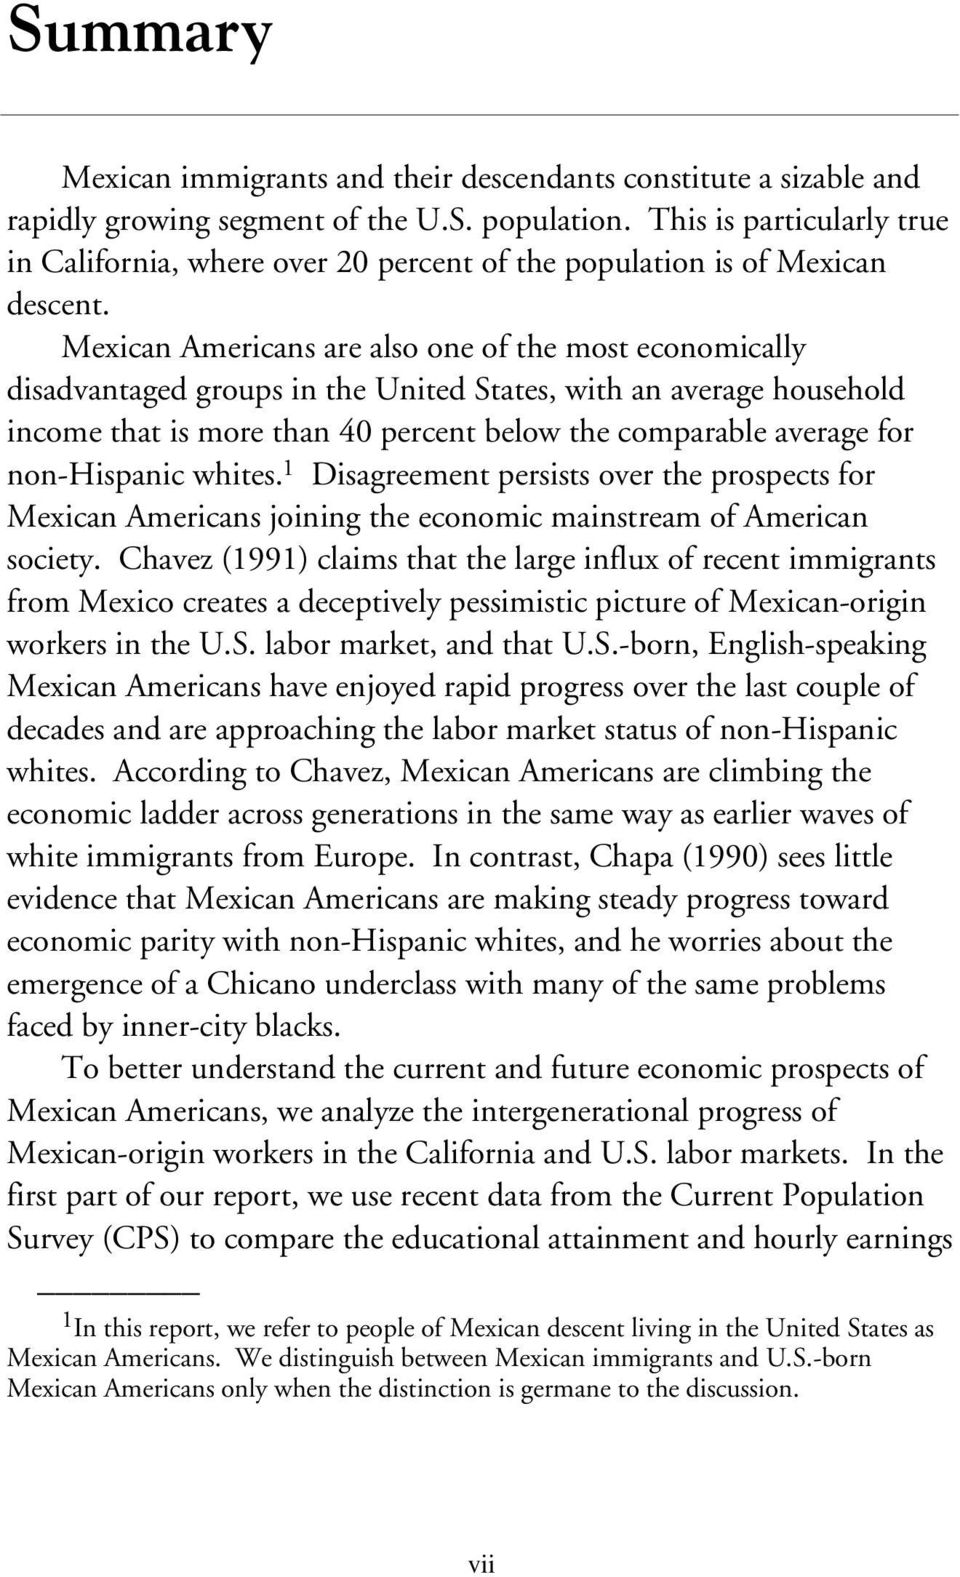 Mexican Americans are also one of the most economically disadvantaged groups in the United States, with an average household income that is more than 40 percent below the comparable average for